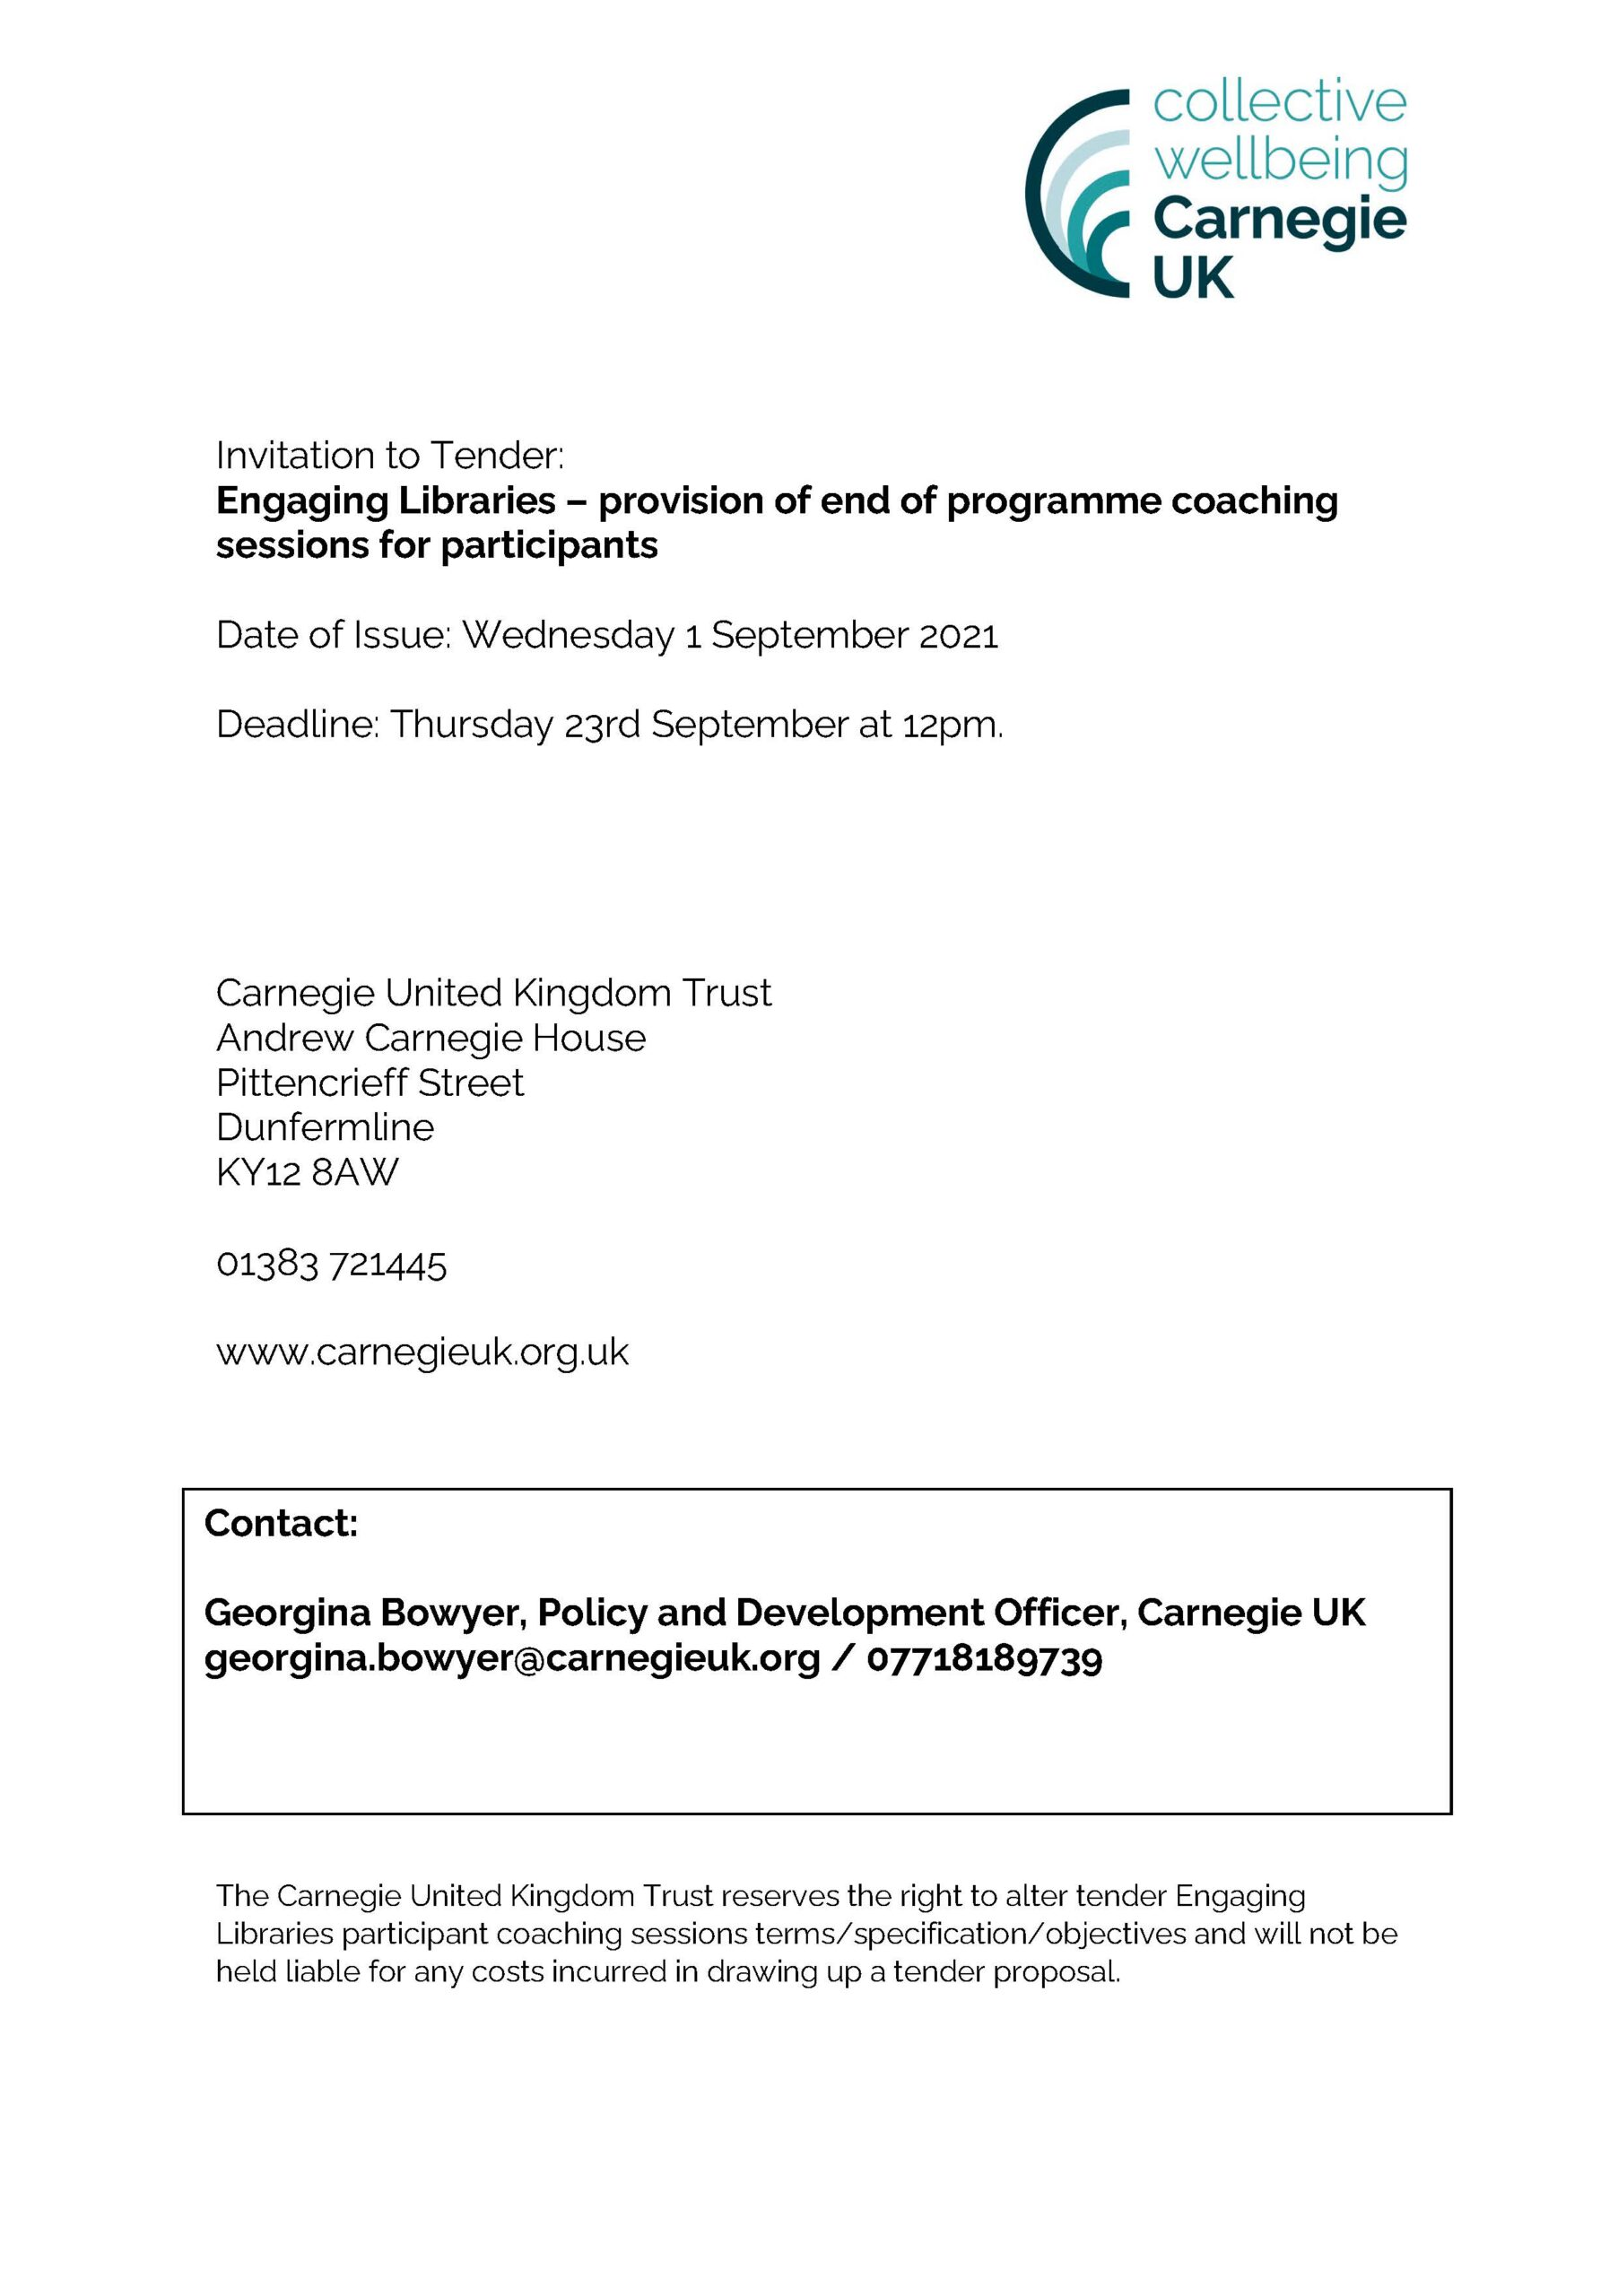 Invitation to Tender Engaging Libraries – provision of end of programme coaching sessions for participants